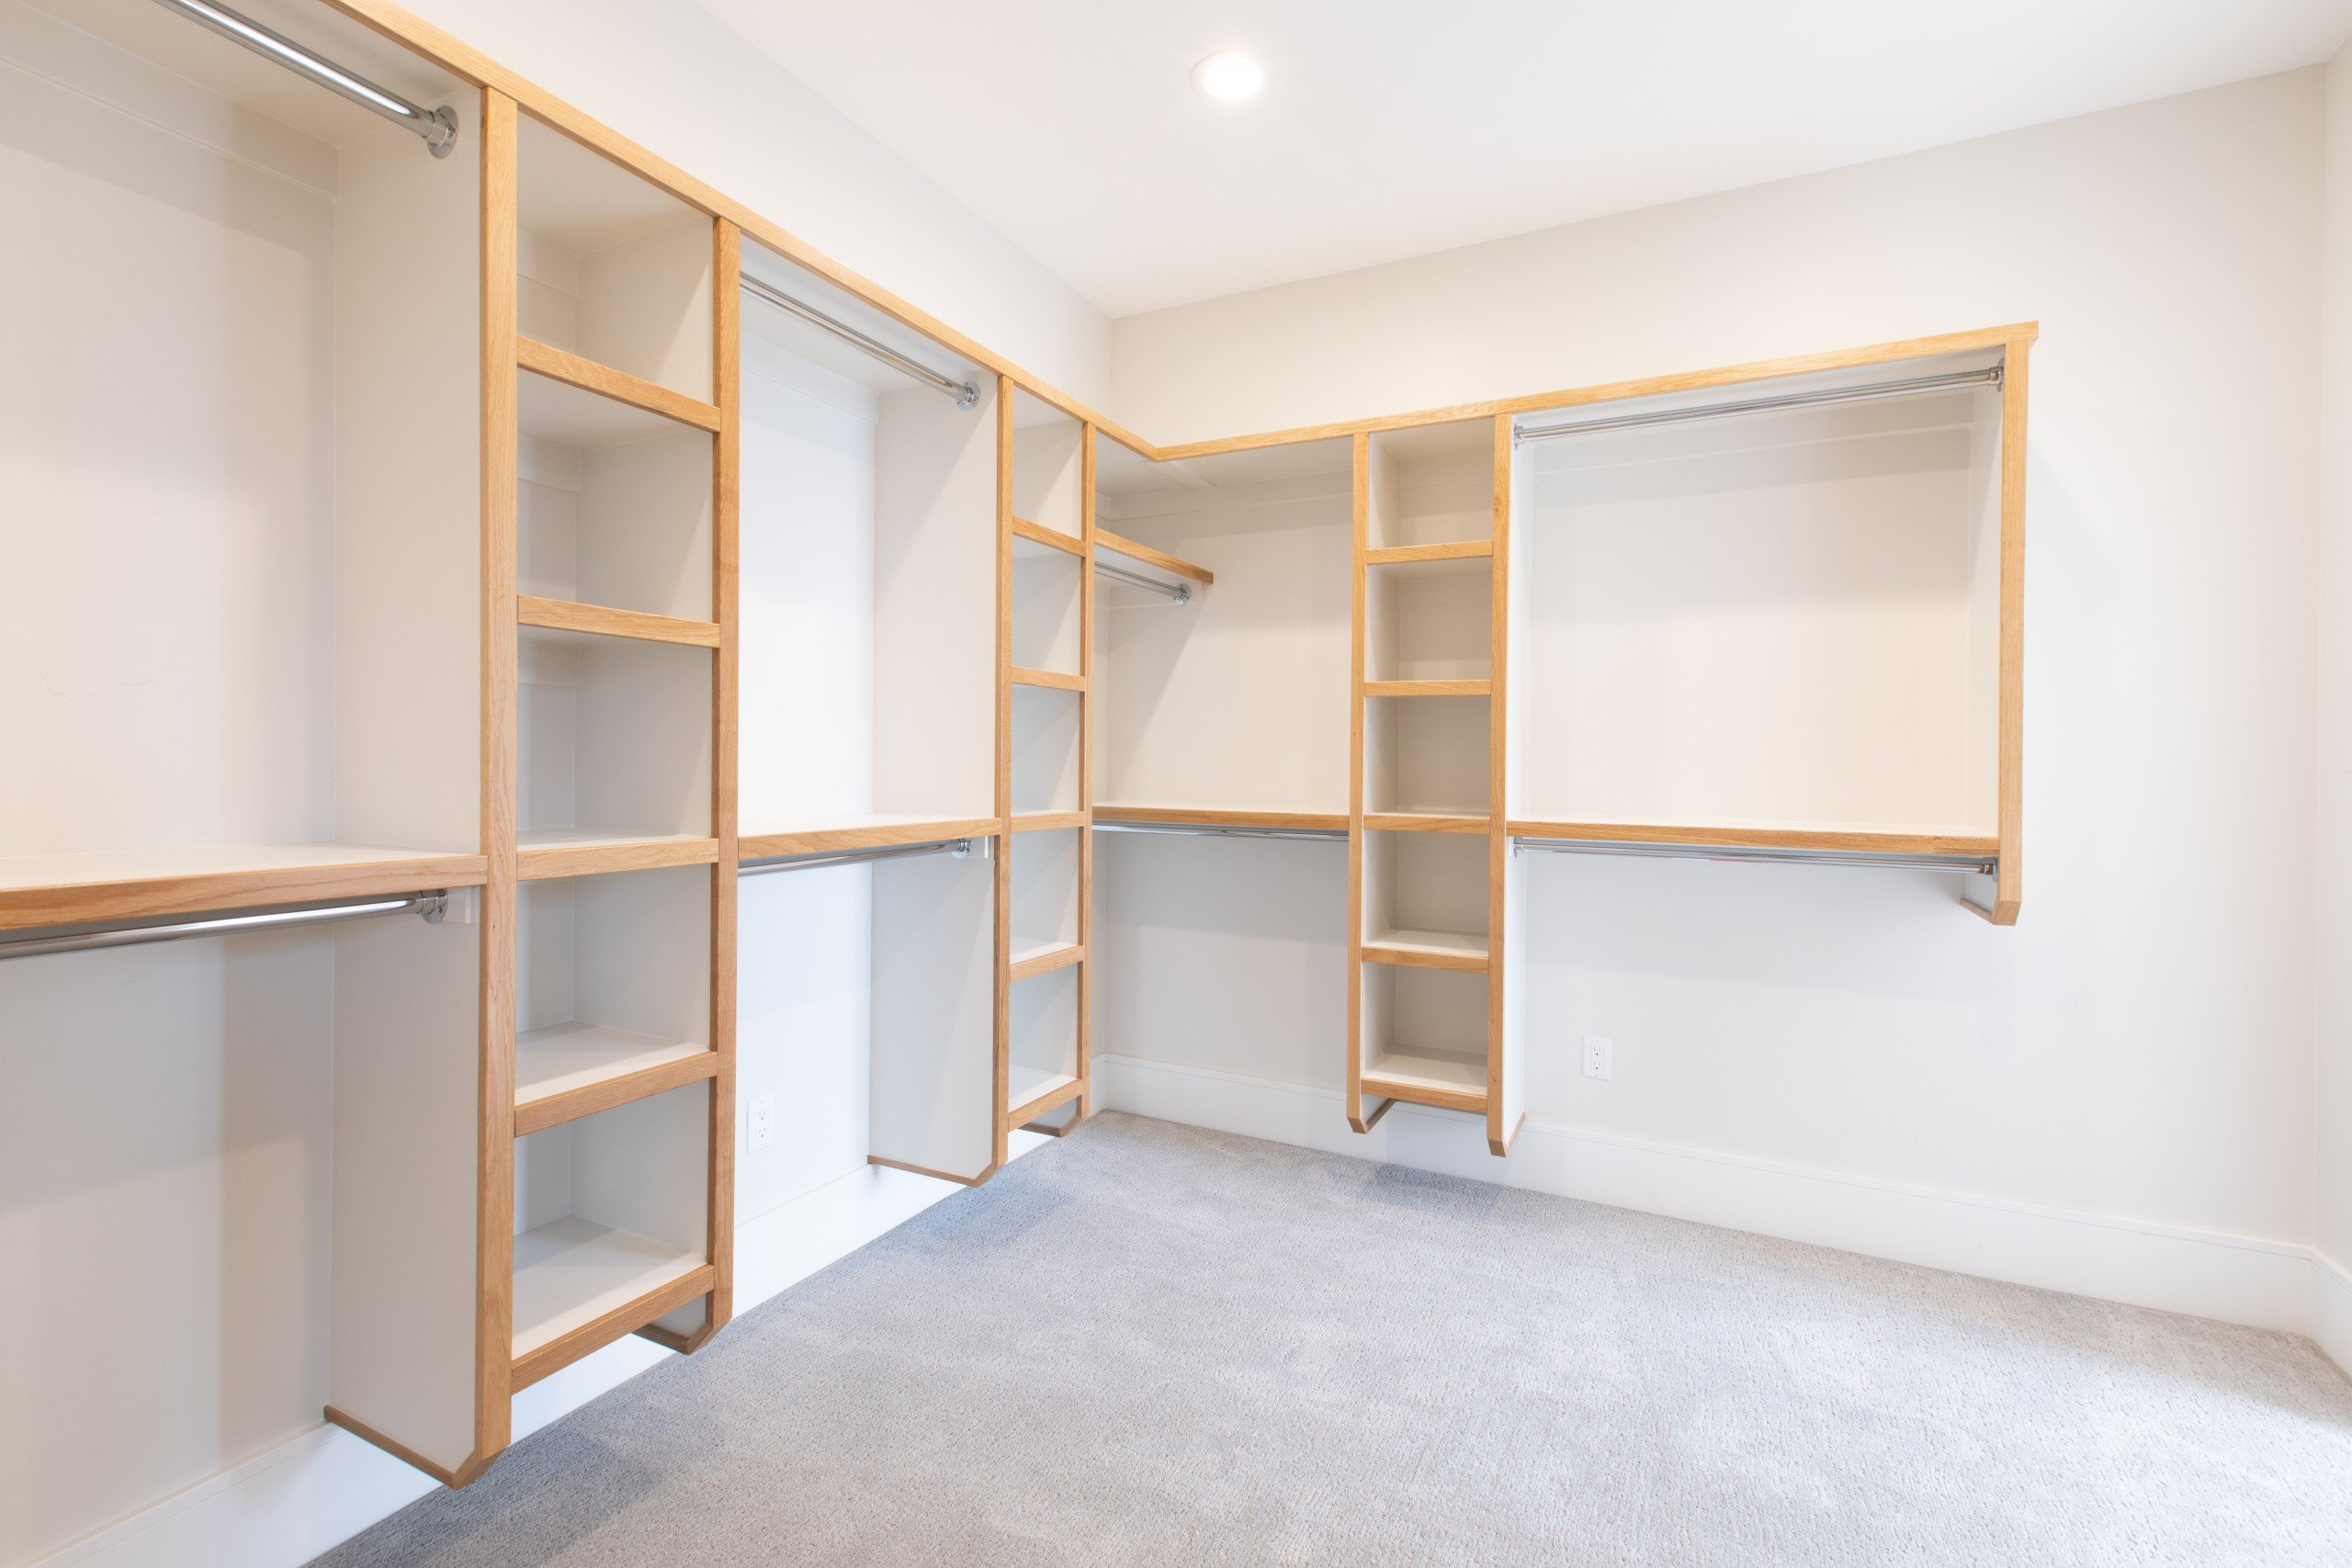 Interior Photography: Walk-in Closet